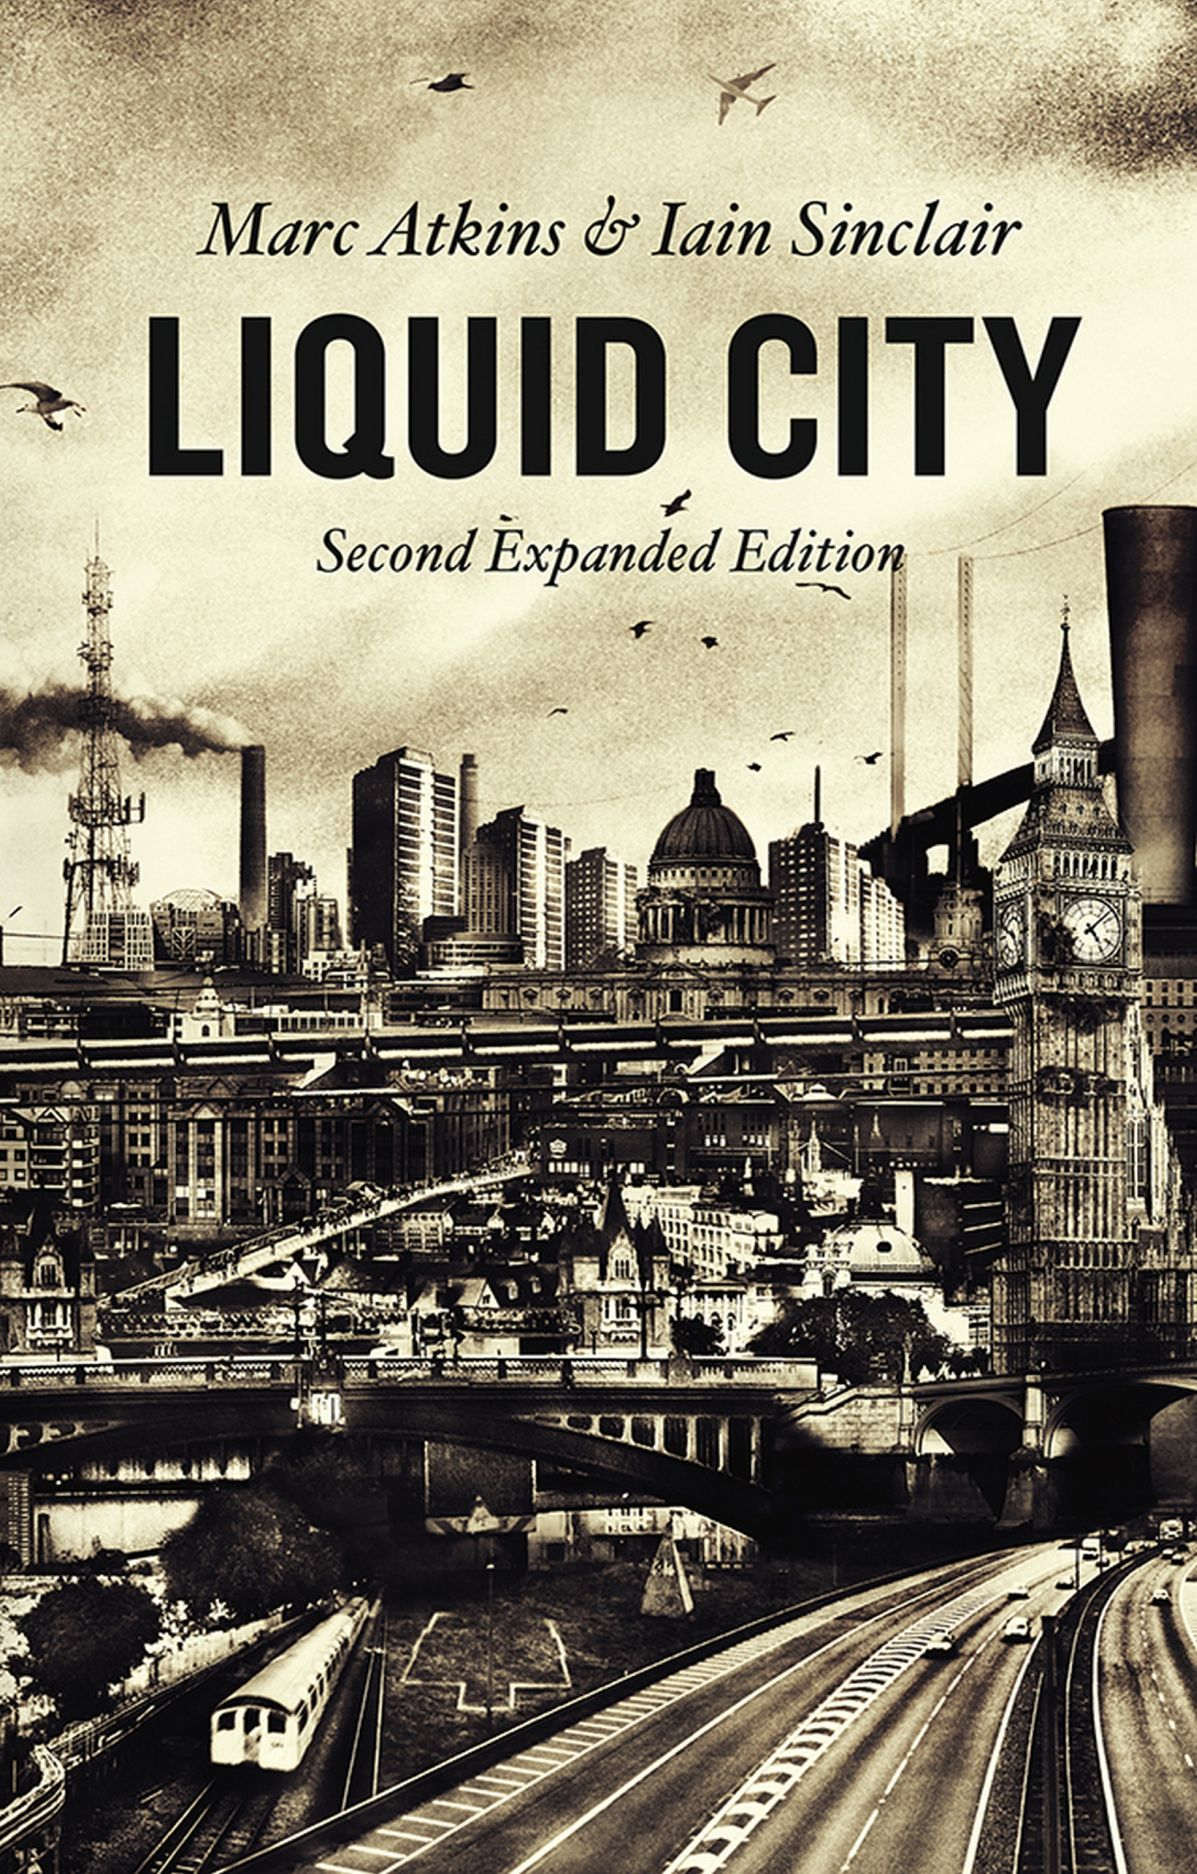 Liquid City: Second Expanded Edition